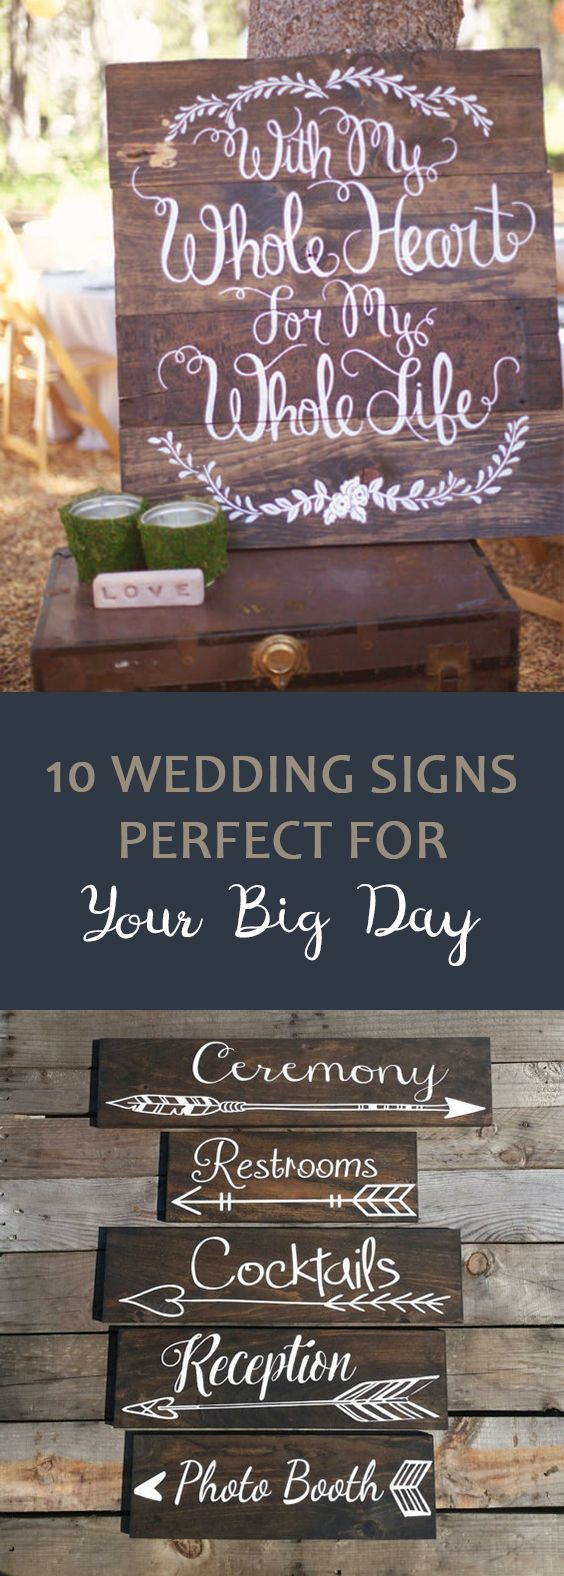 DIY Wedding Home Wedding Wedding DIY Wedding Decor Decorating For